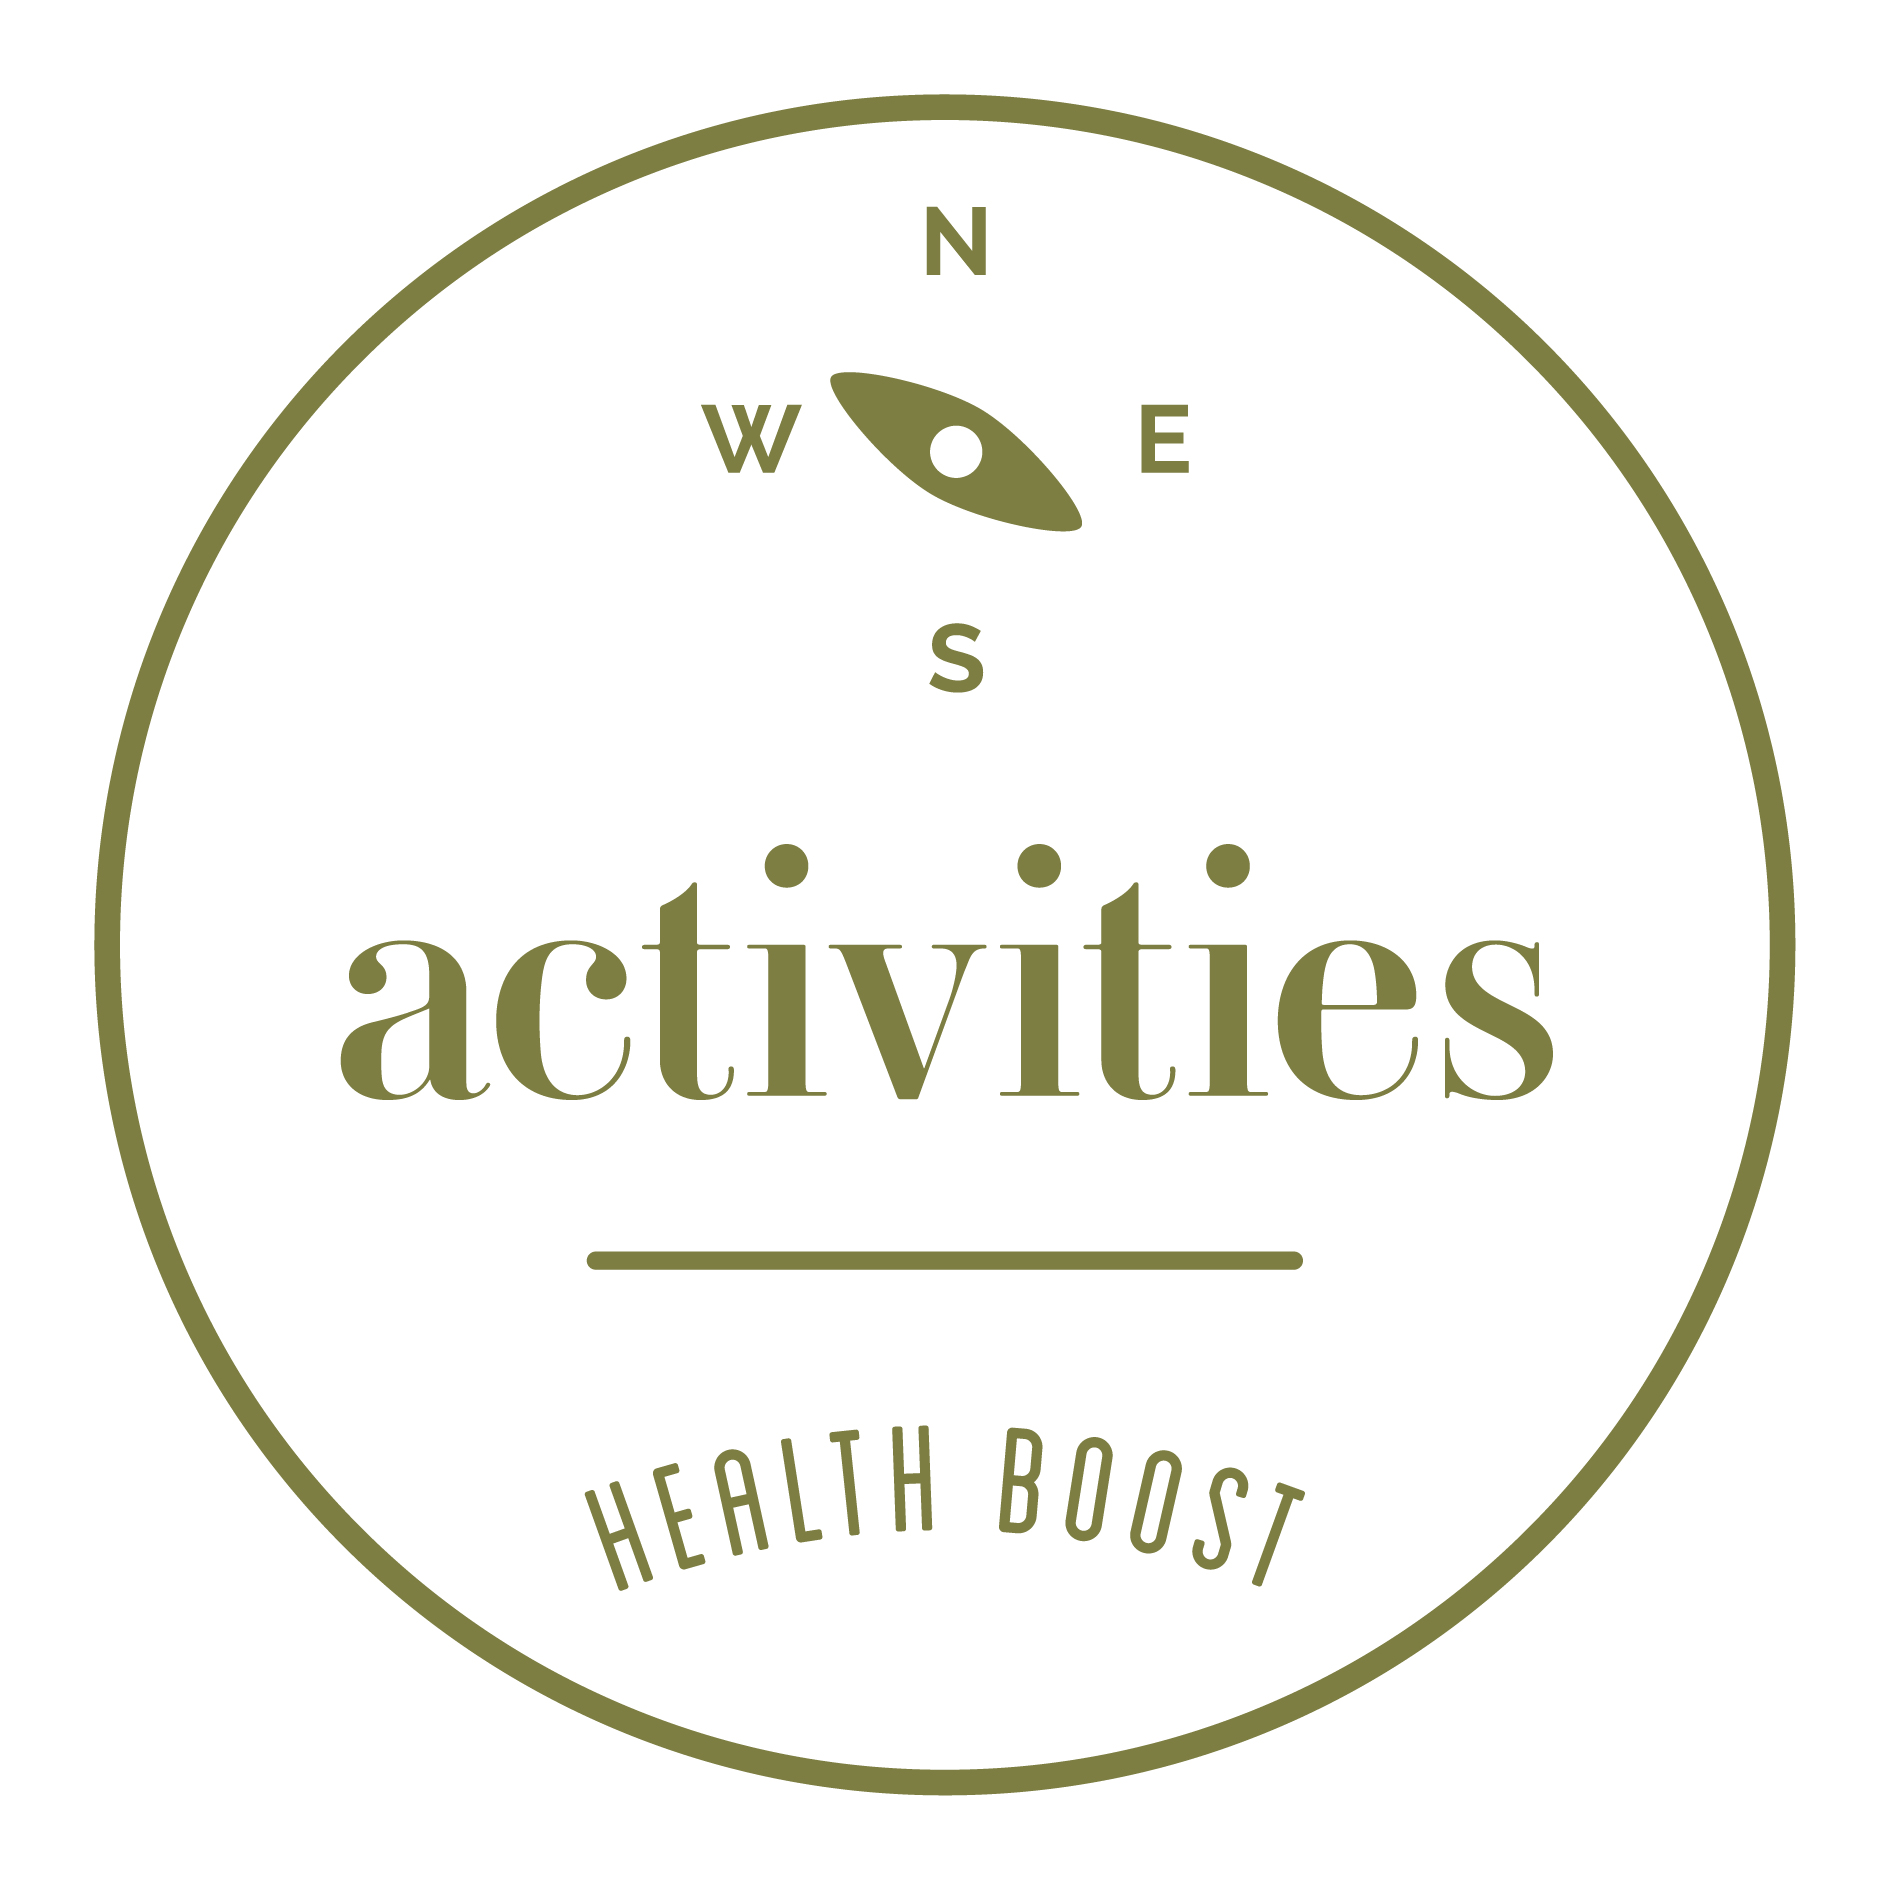 The Health Boost - activities.jpg